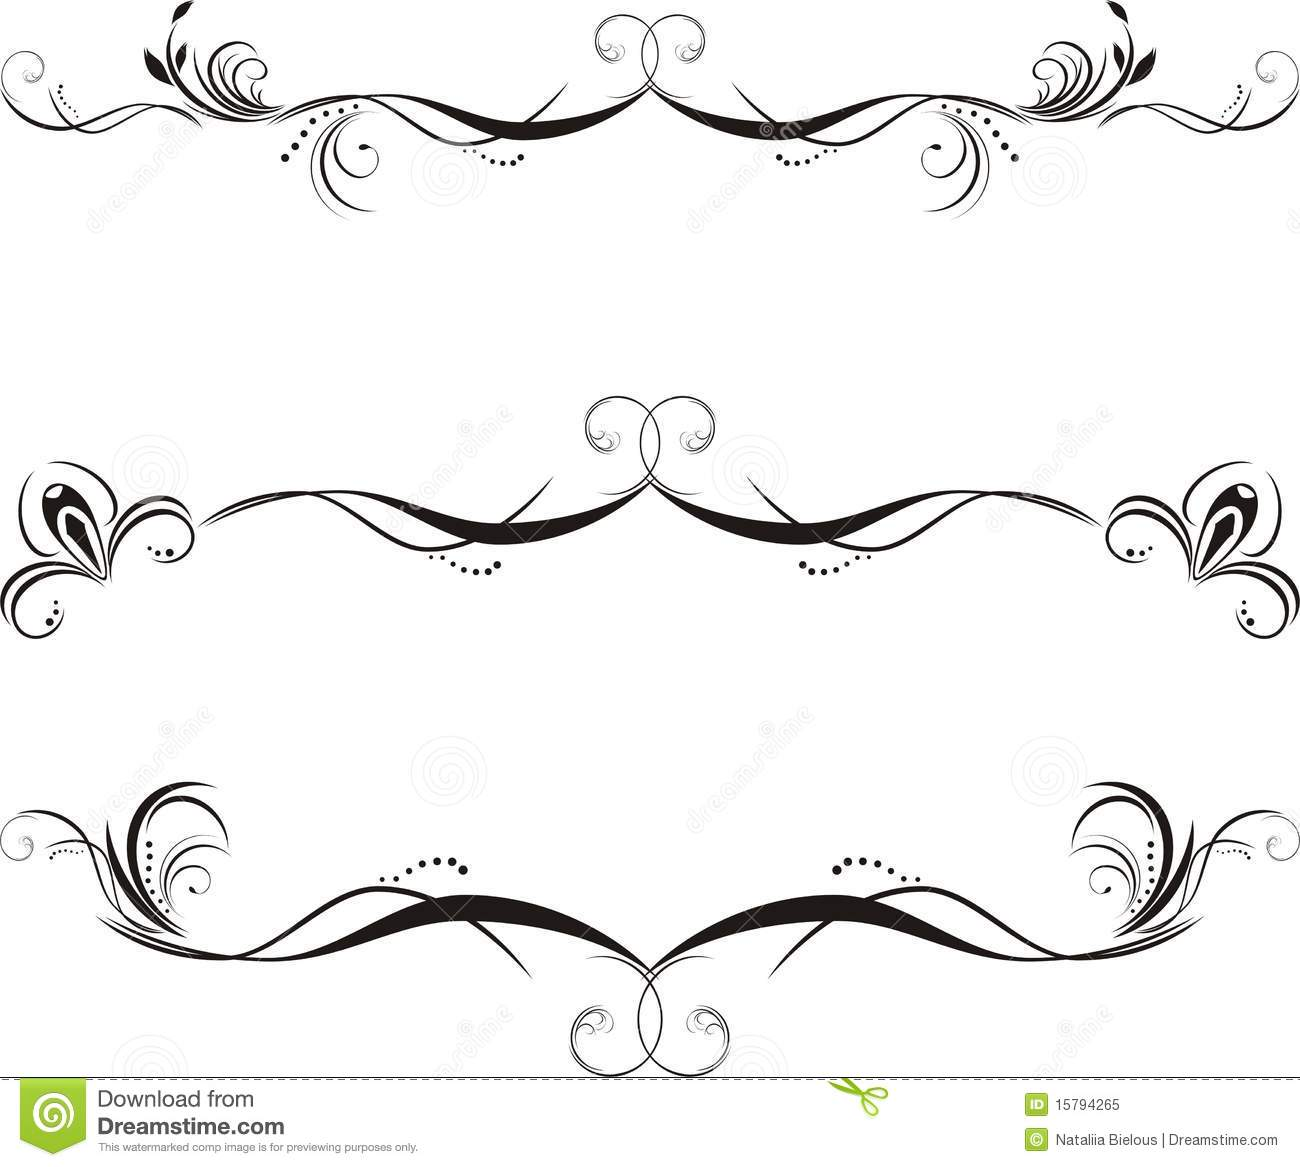 Three decorative floral borders